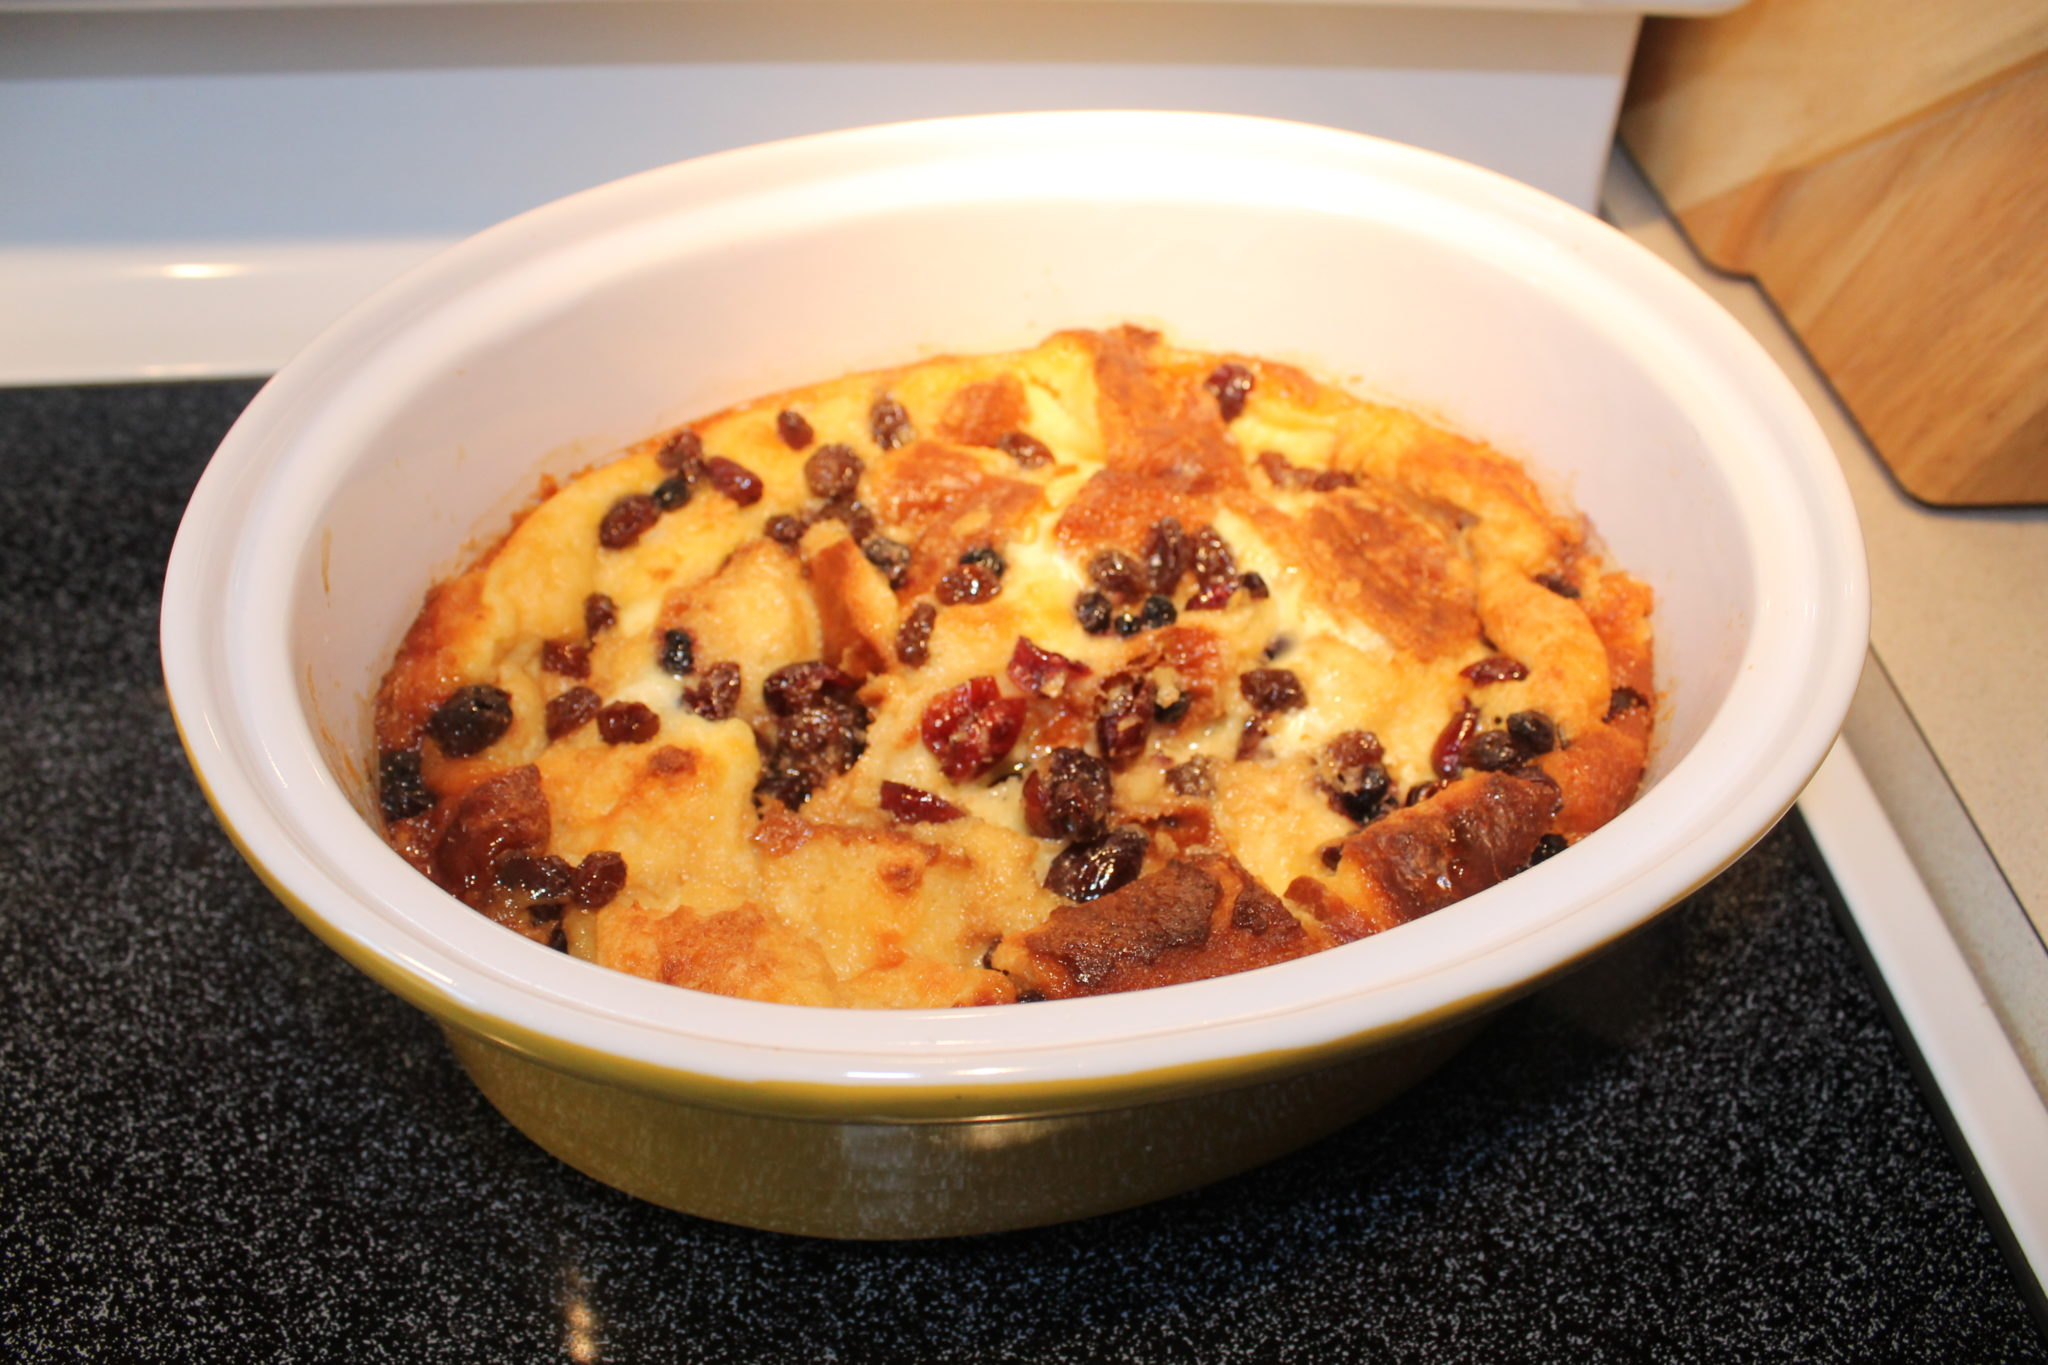 kings hawaiian bread pudding baked